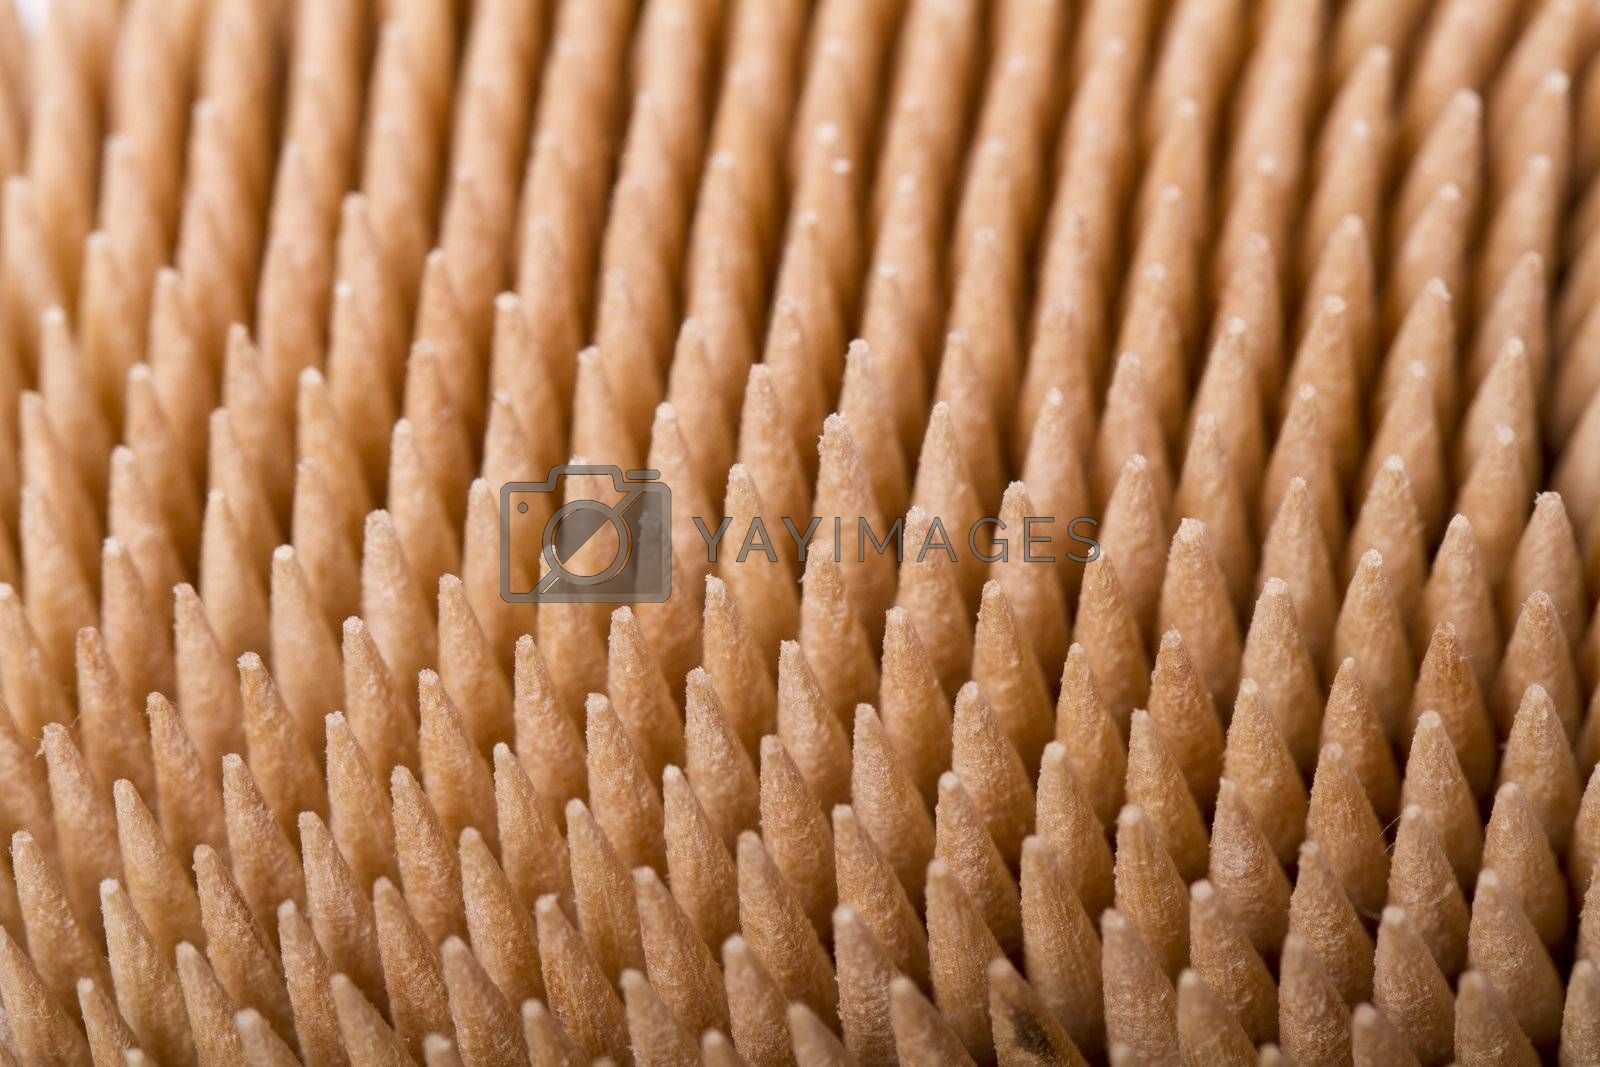 Macro view of a bunch of toothpicks inside a container.